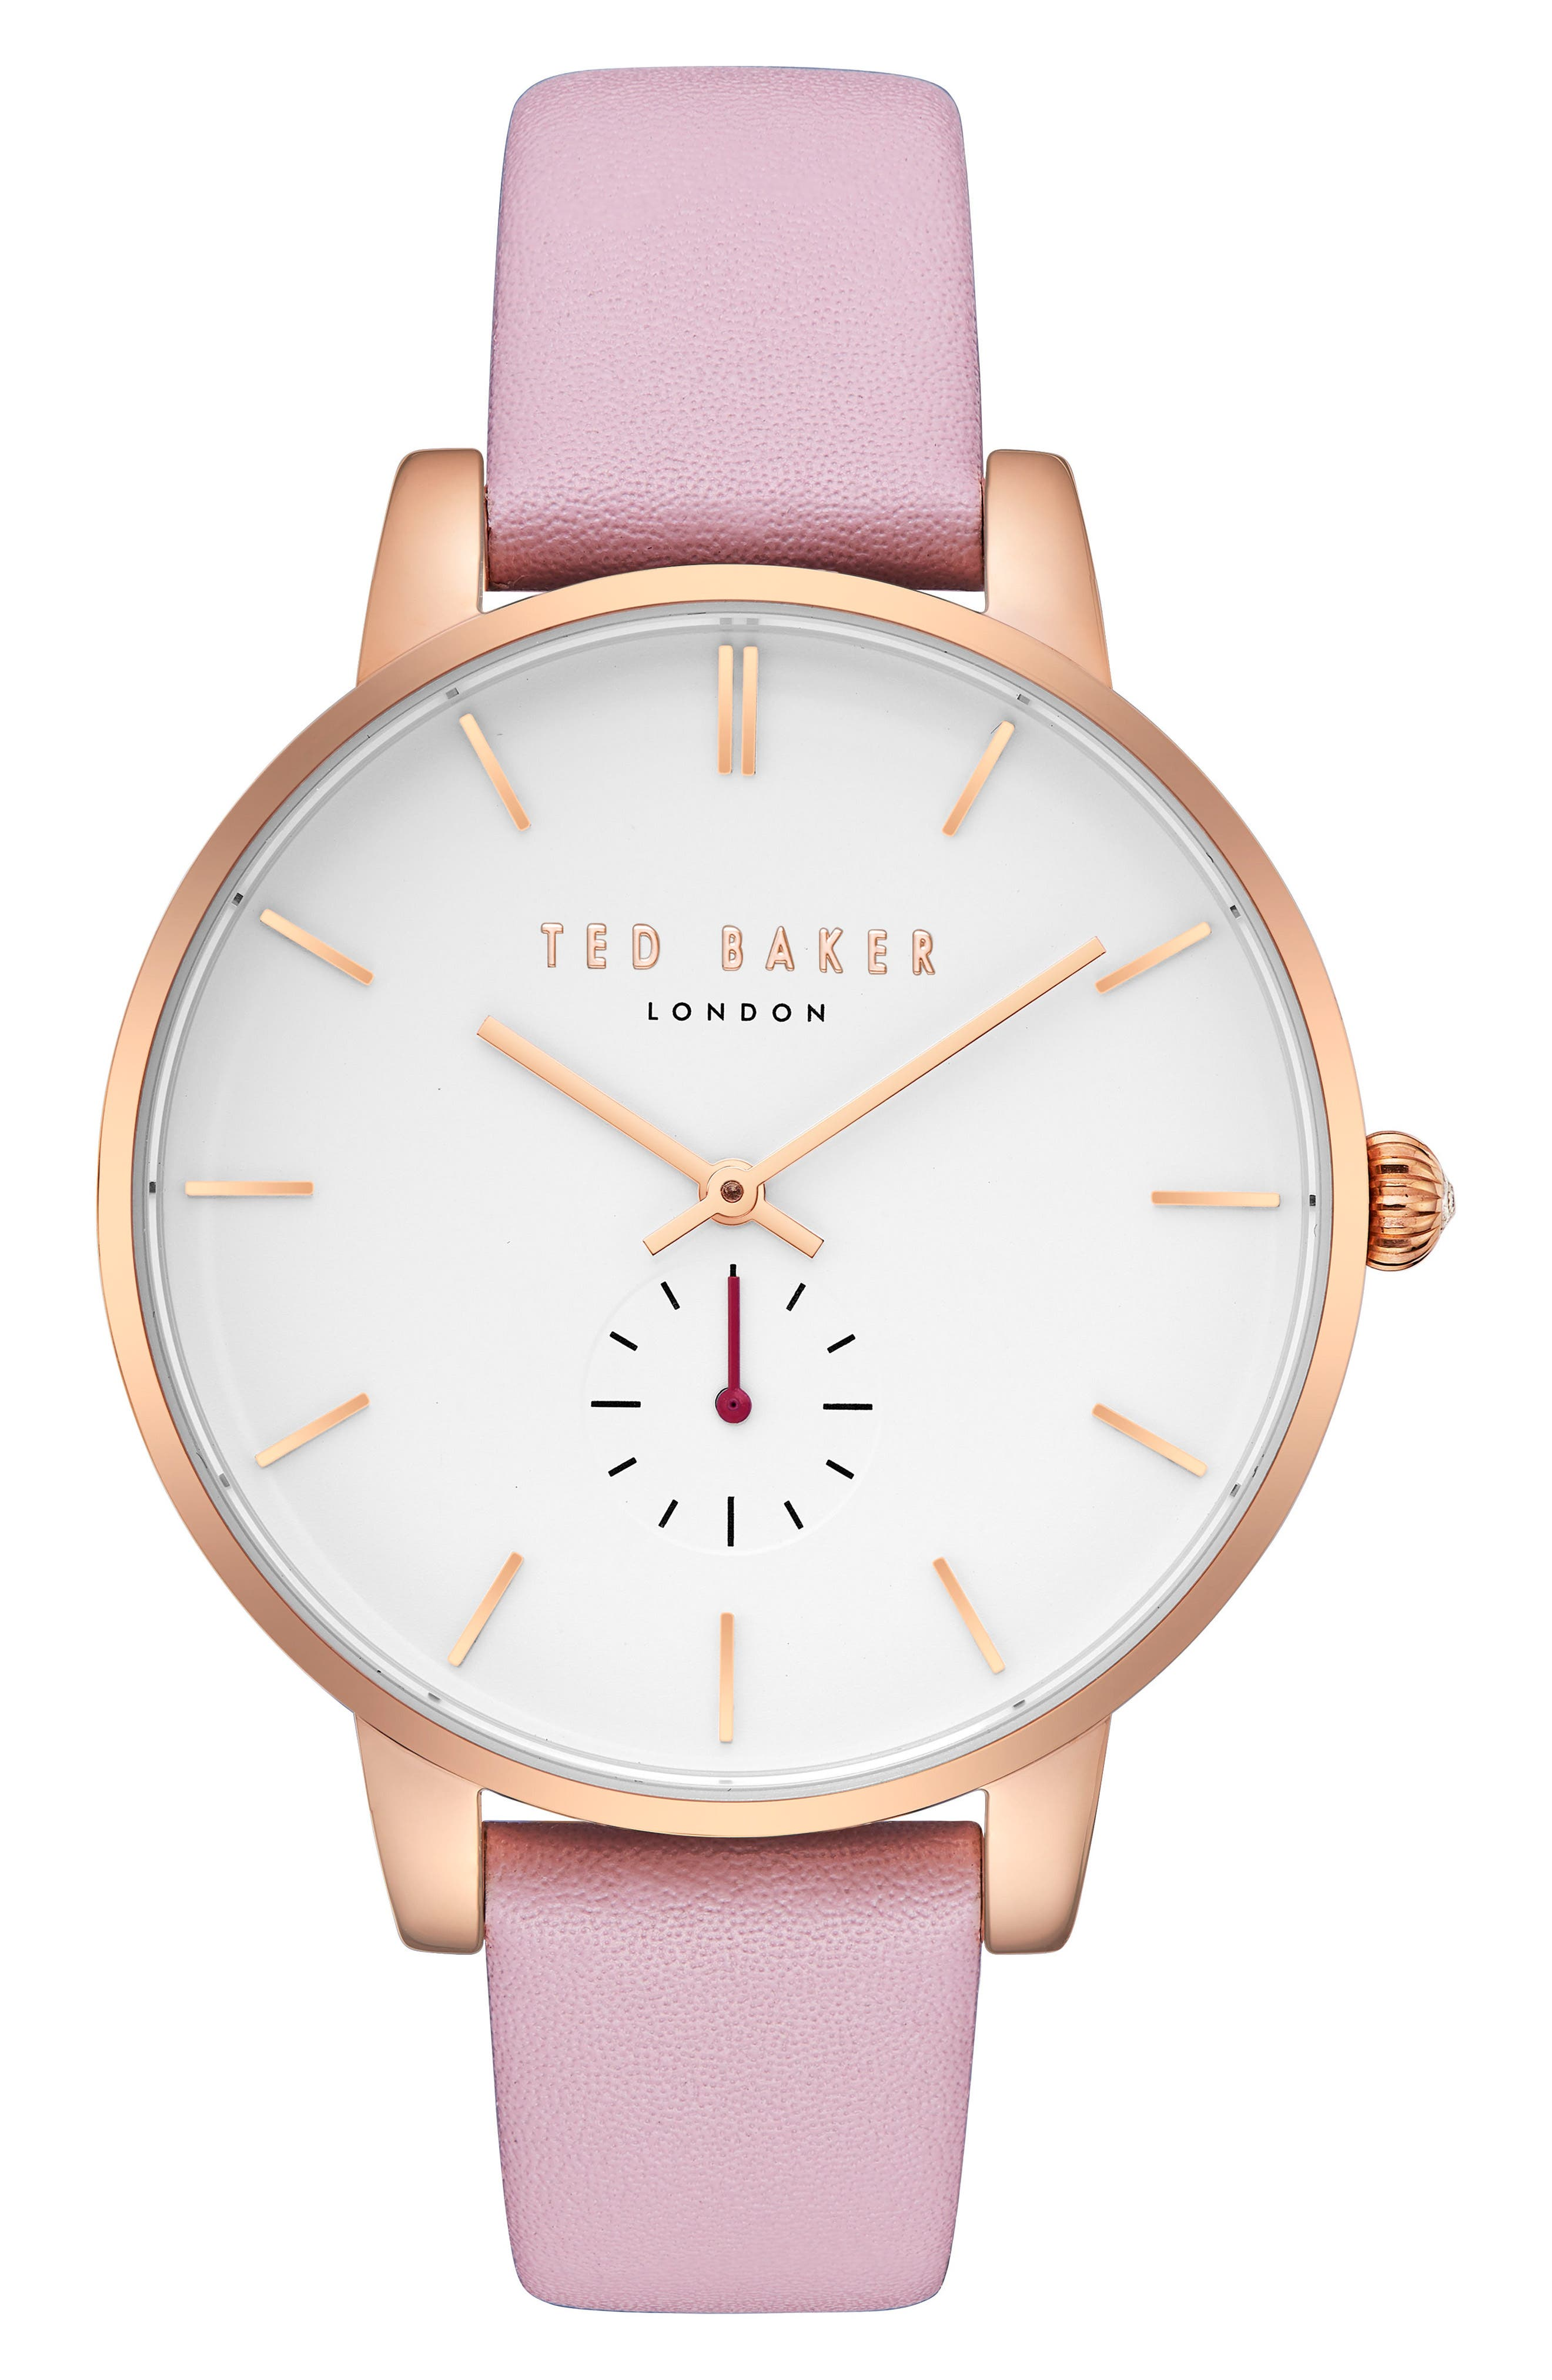 Olivia Leather Strap Watch,                         Main,                         color, PINK/ WHITE/ ROSE GOLD